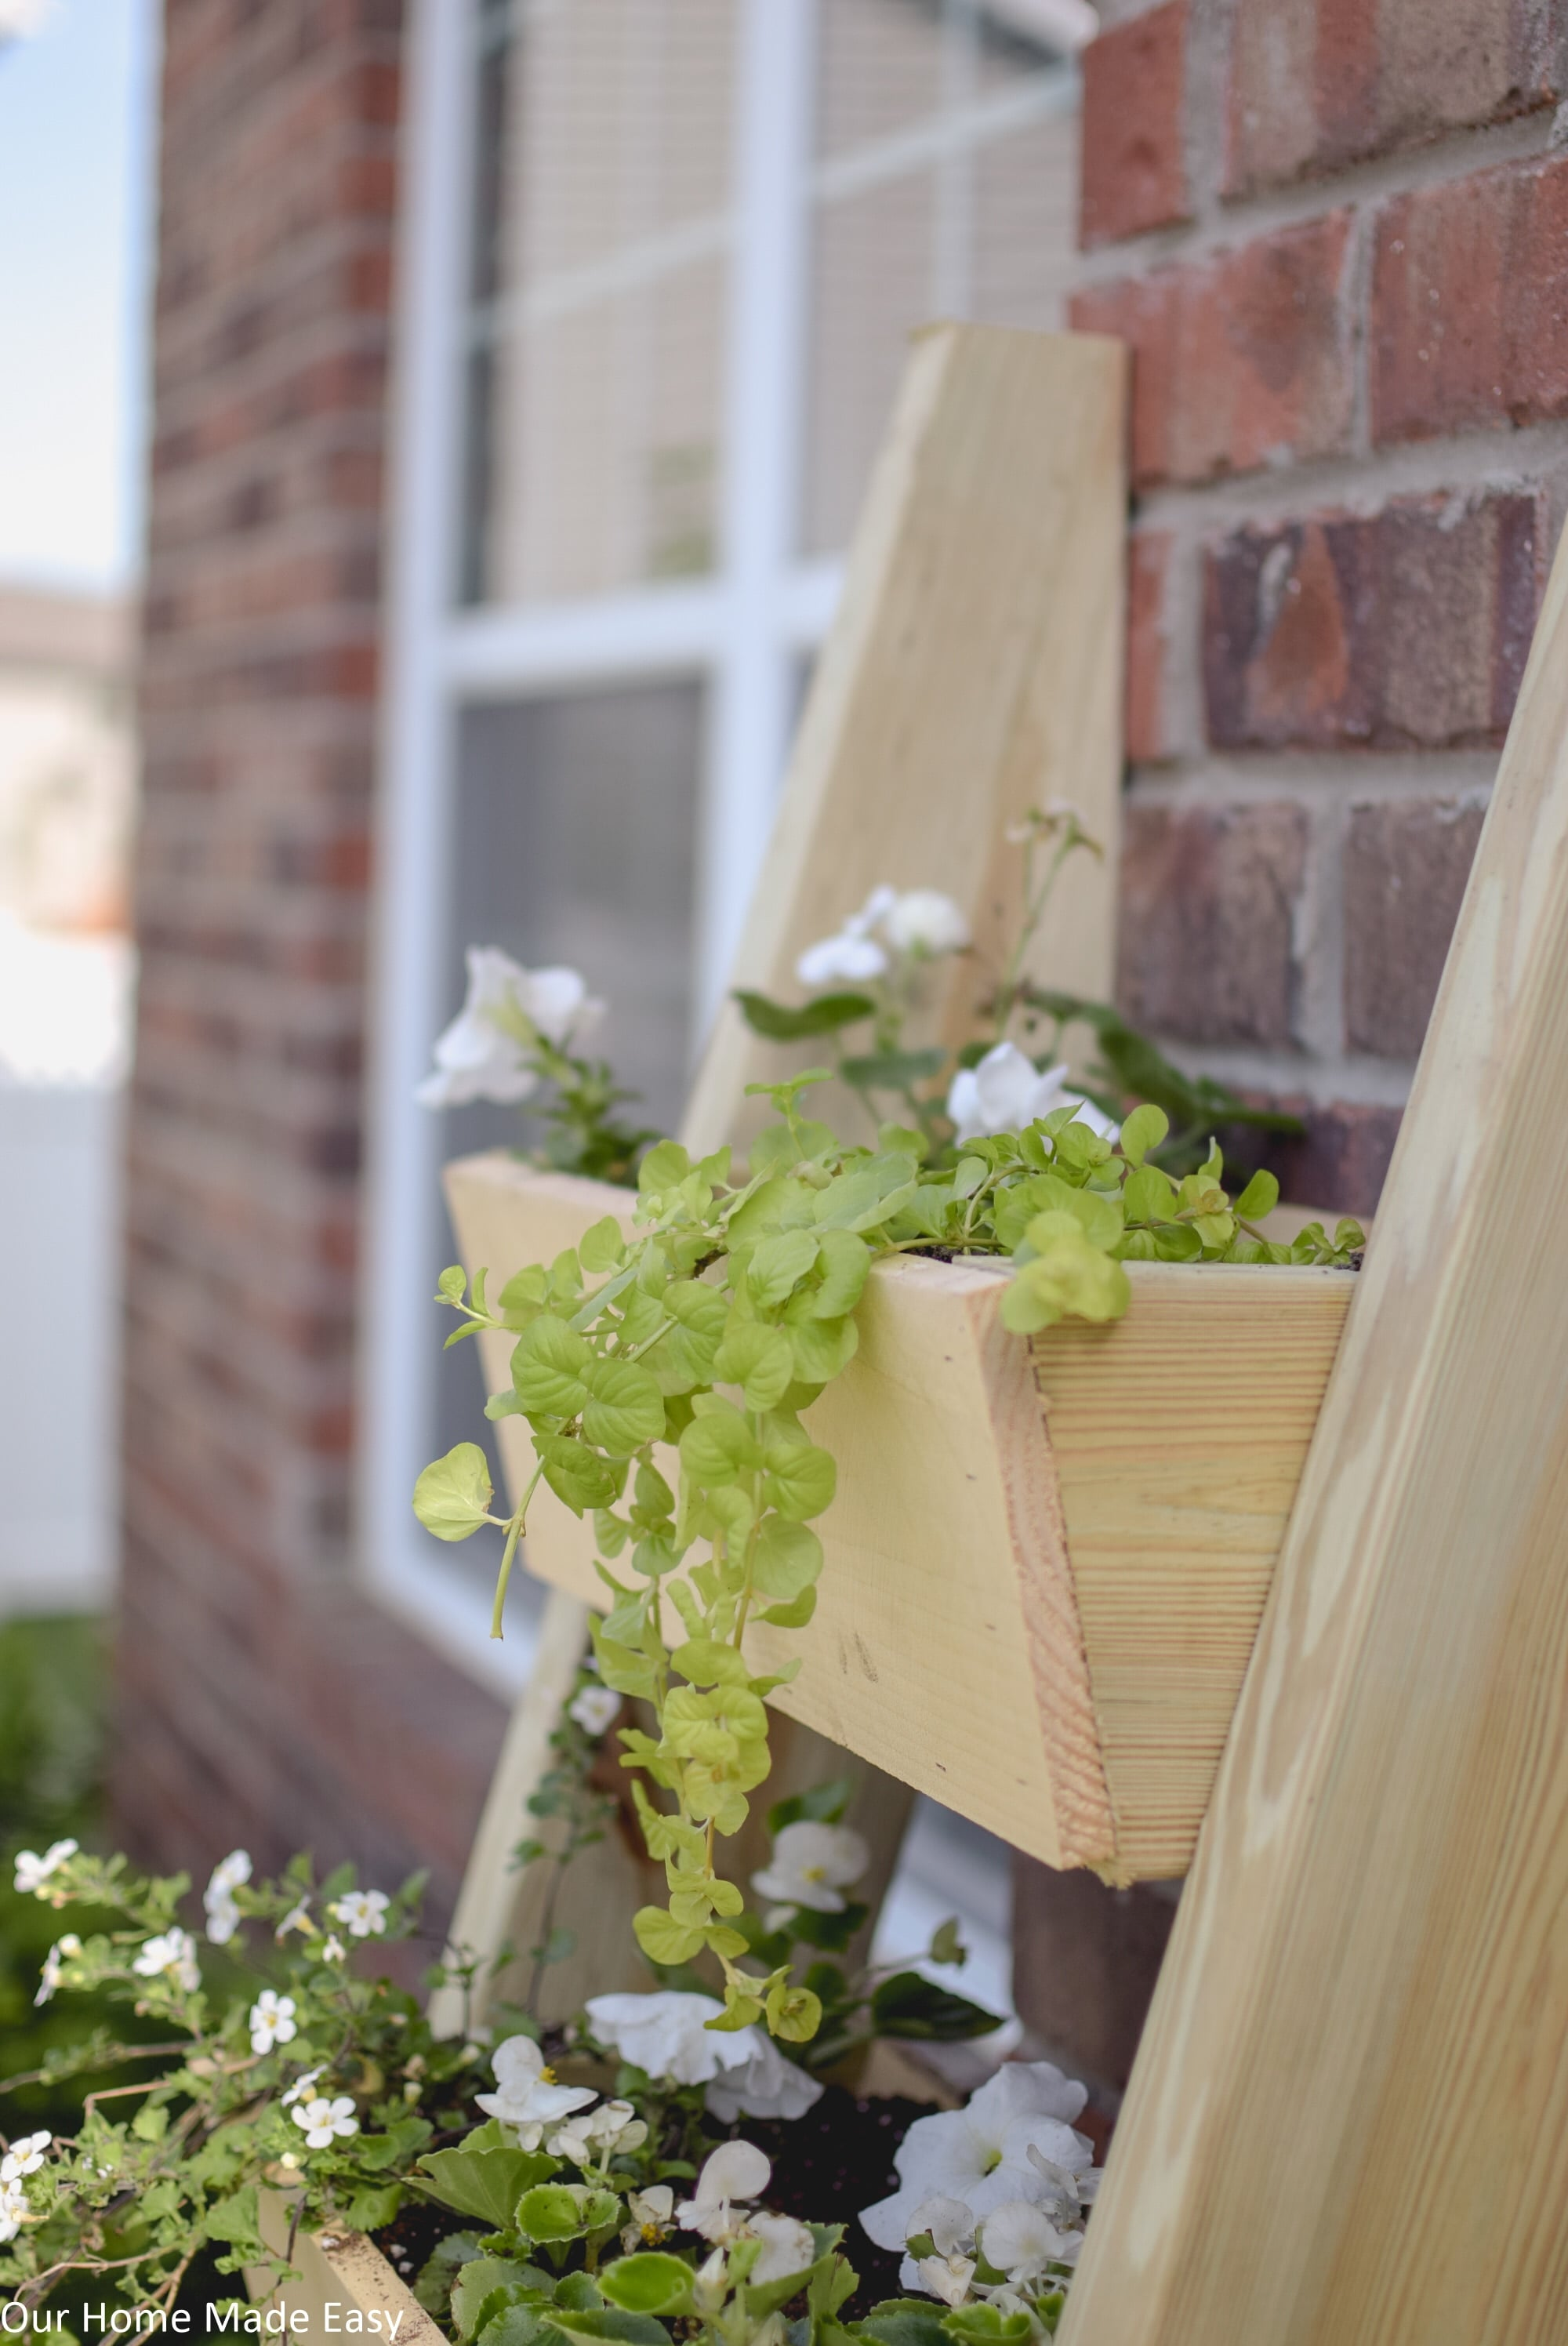 This cedar ladder planter is an easy DIY that doesn't require much woodworking skill